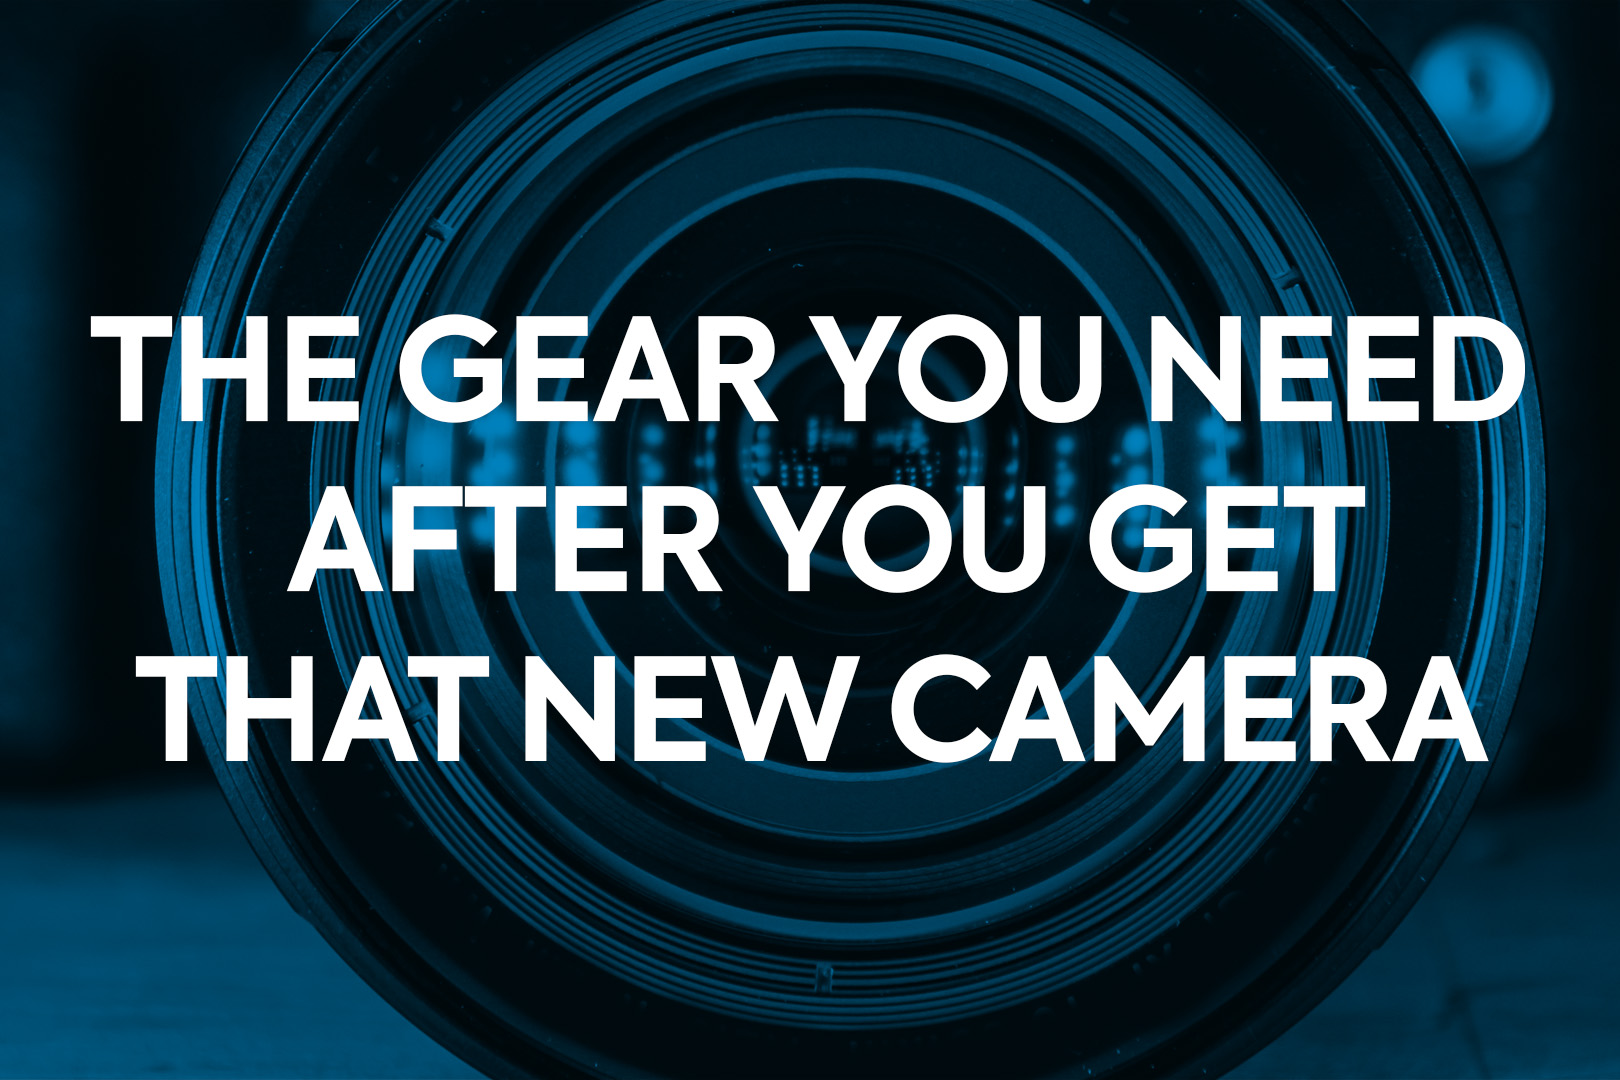 Gear You Need After New Camera 1920x1080.jpg